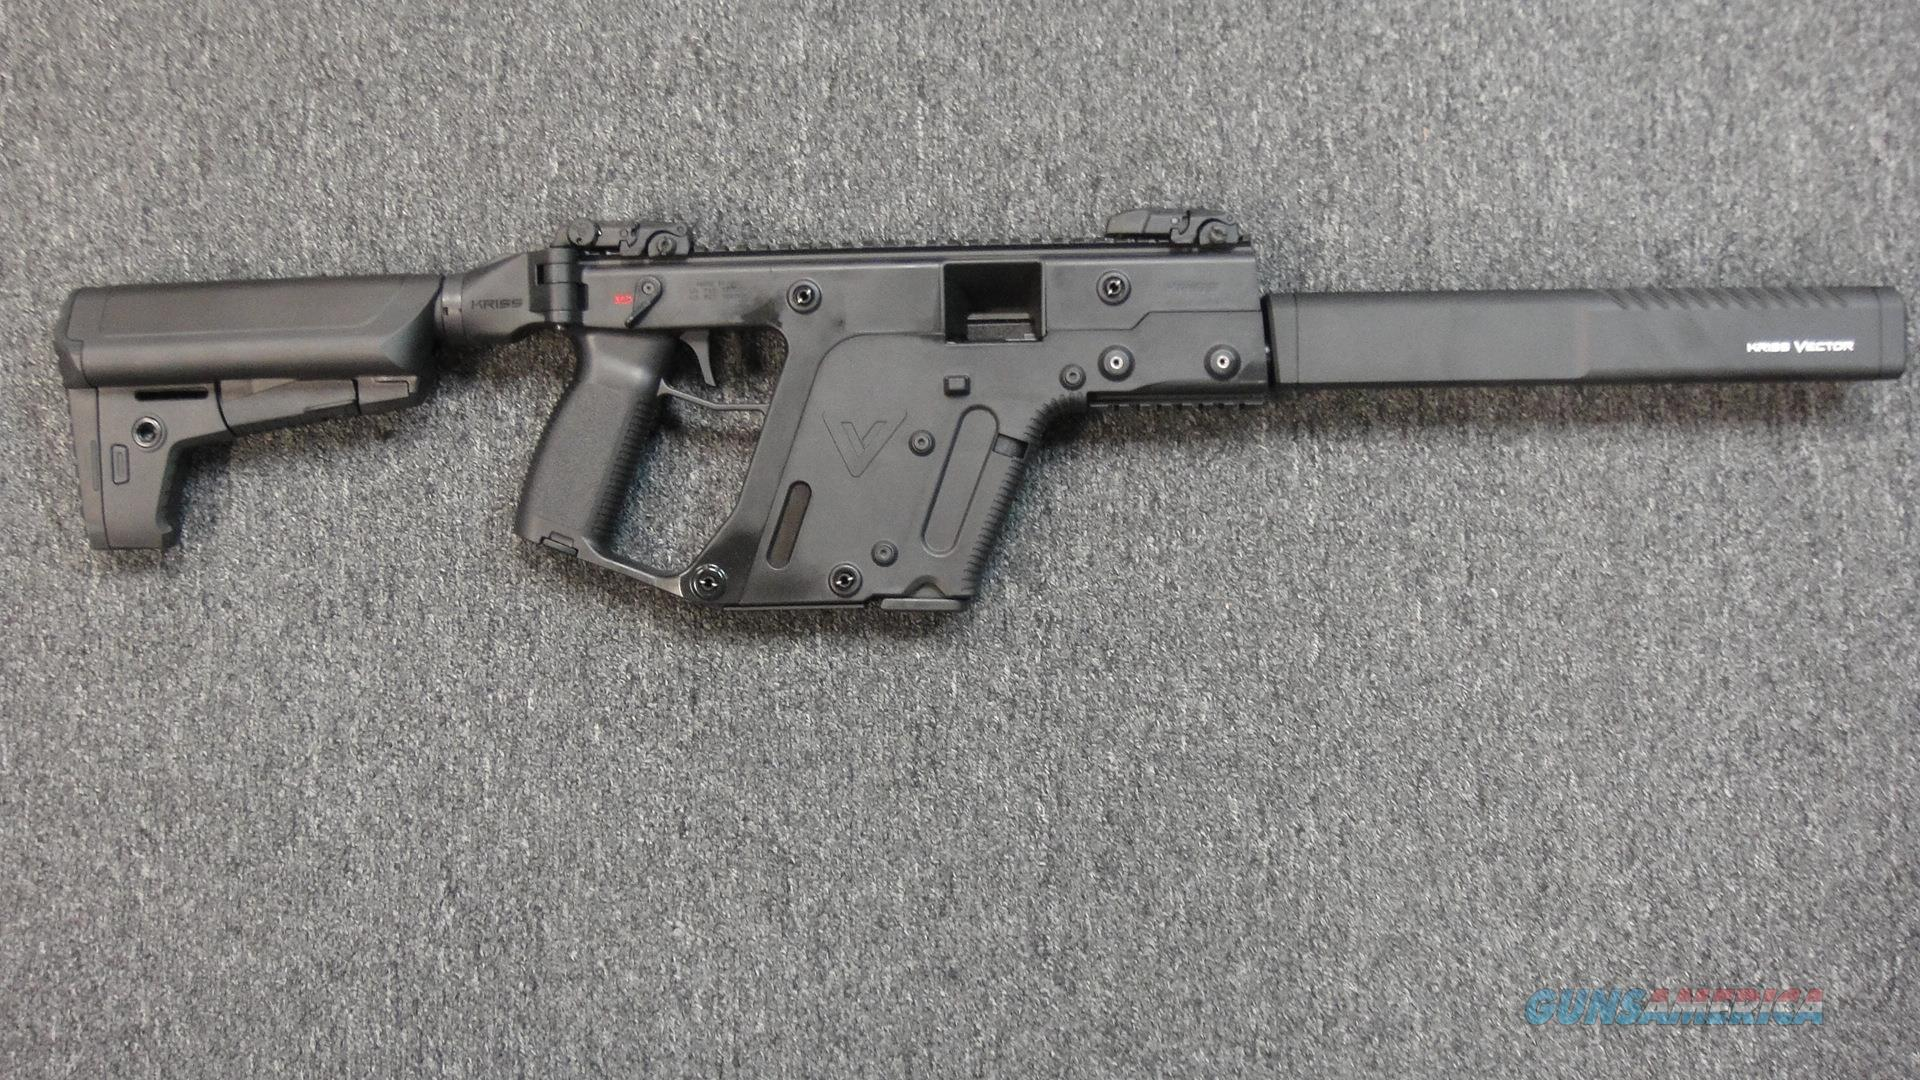 Kriss Vector CRB Gen 2 10mm   Guns > Rifles > Kriss Tactical Rifles